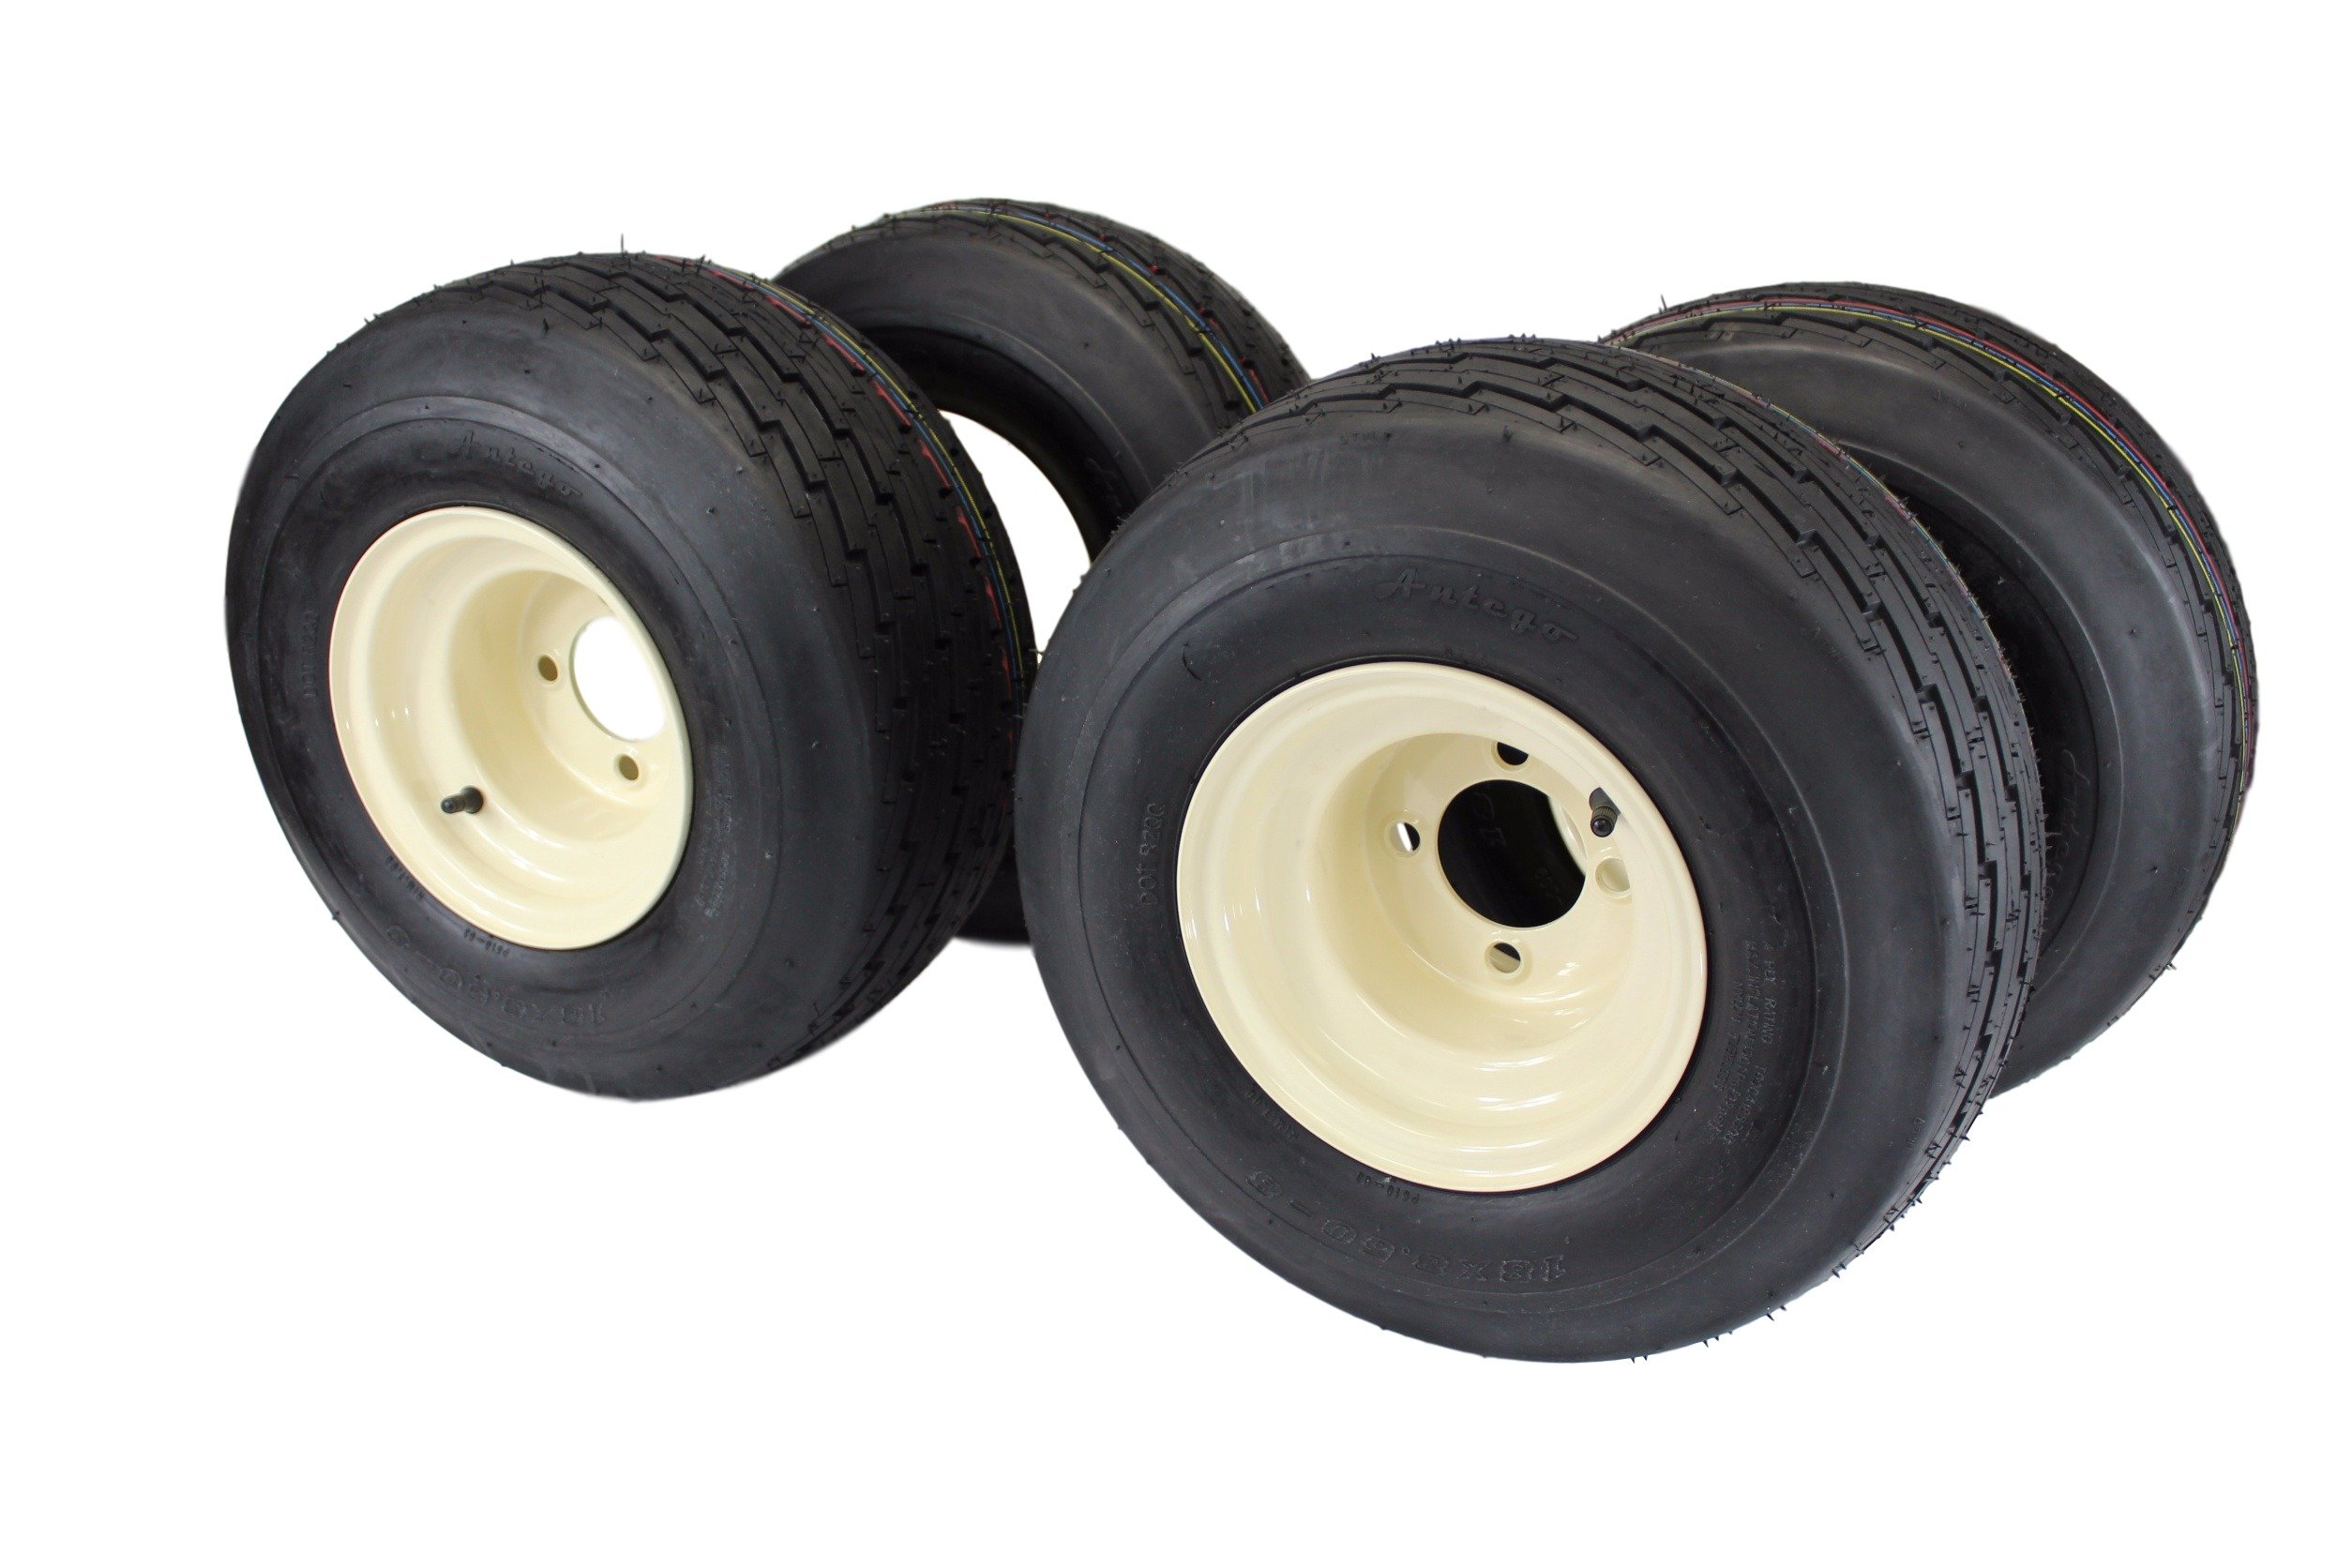 18x8.50-8 with 8x7 Tan Wheel Assembly for Golf Cart and Lawn Mower (Set of 4) by Antego Tire & Wheel (Image #1)